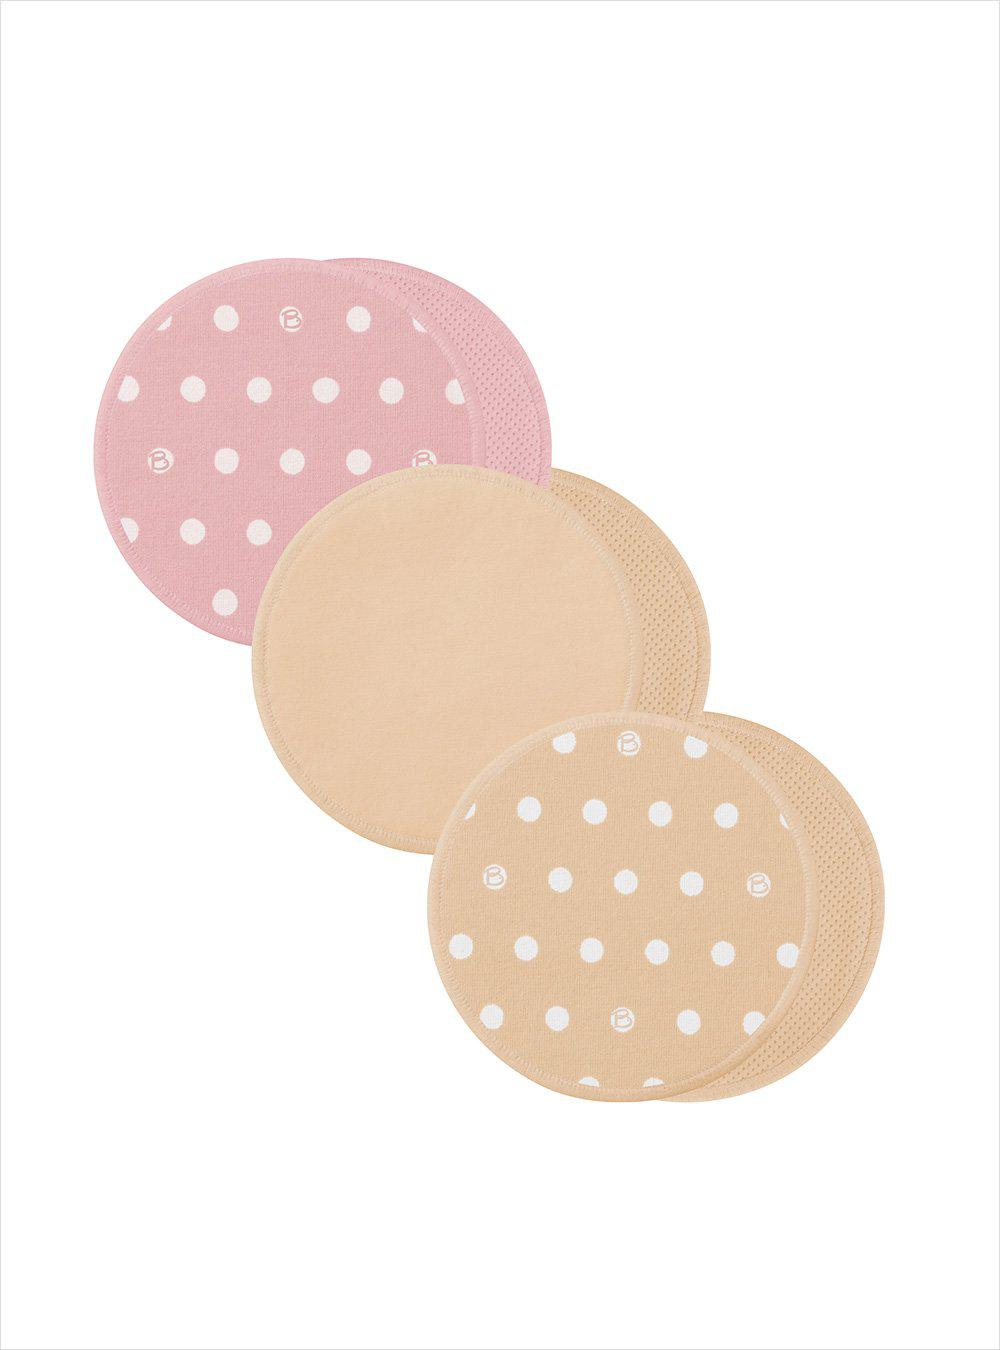 Washable Nursing Pads